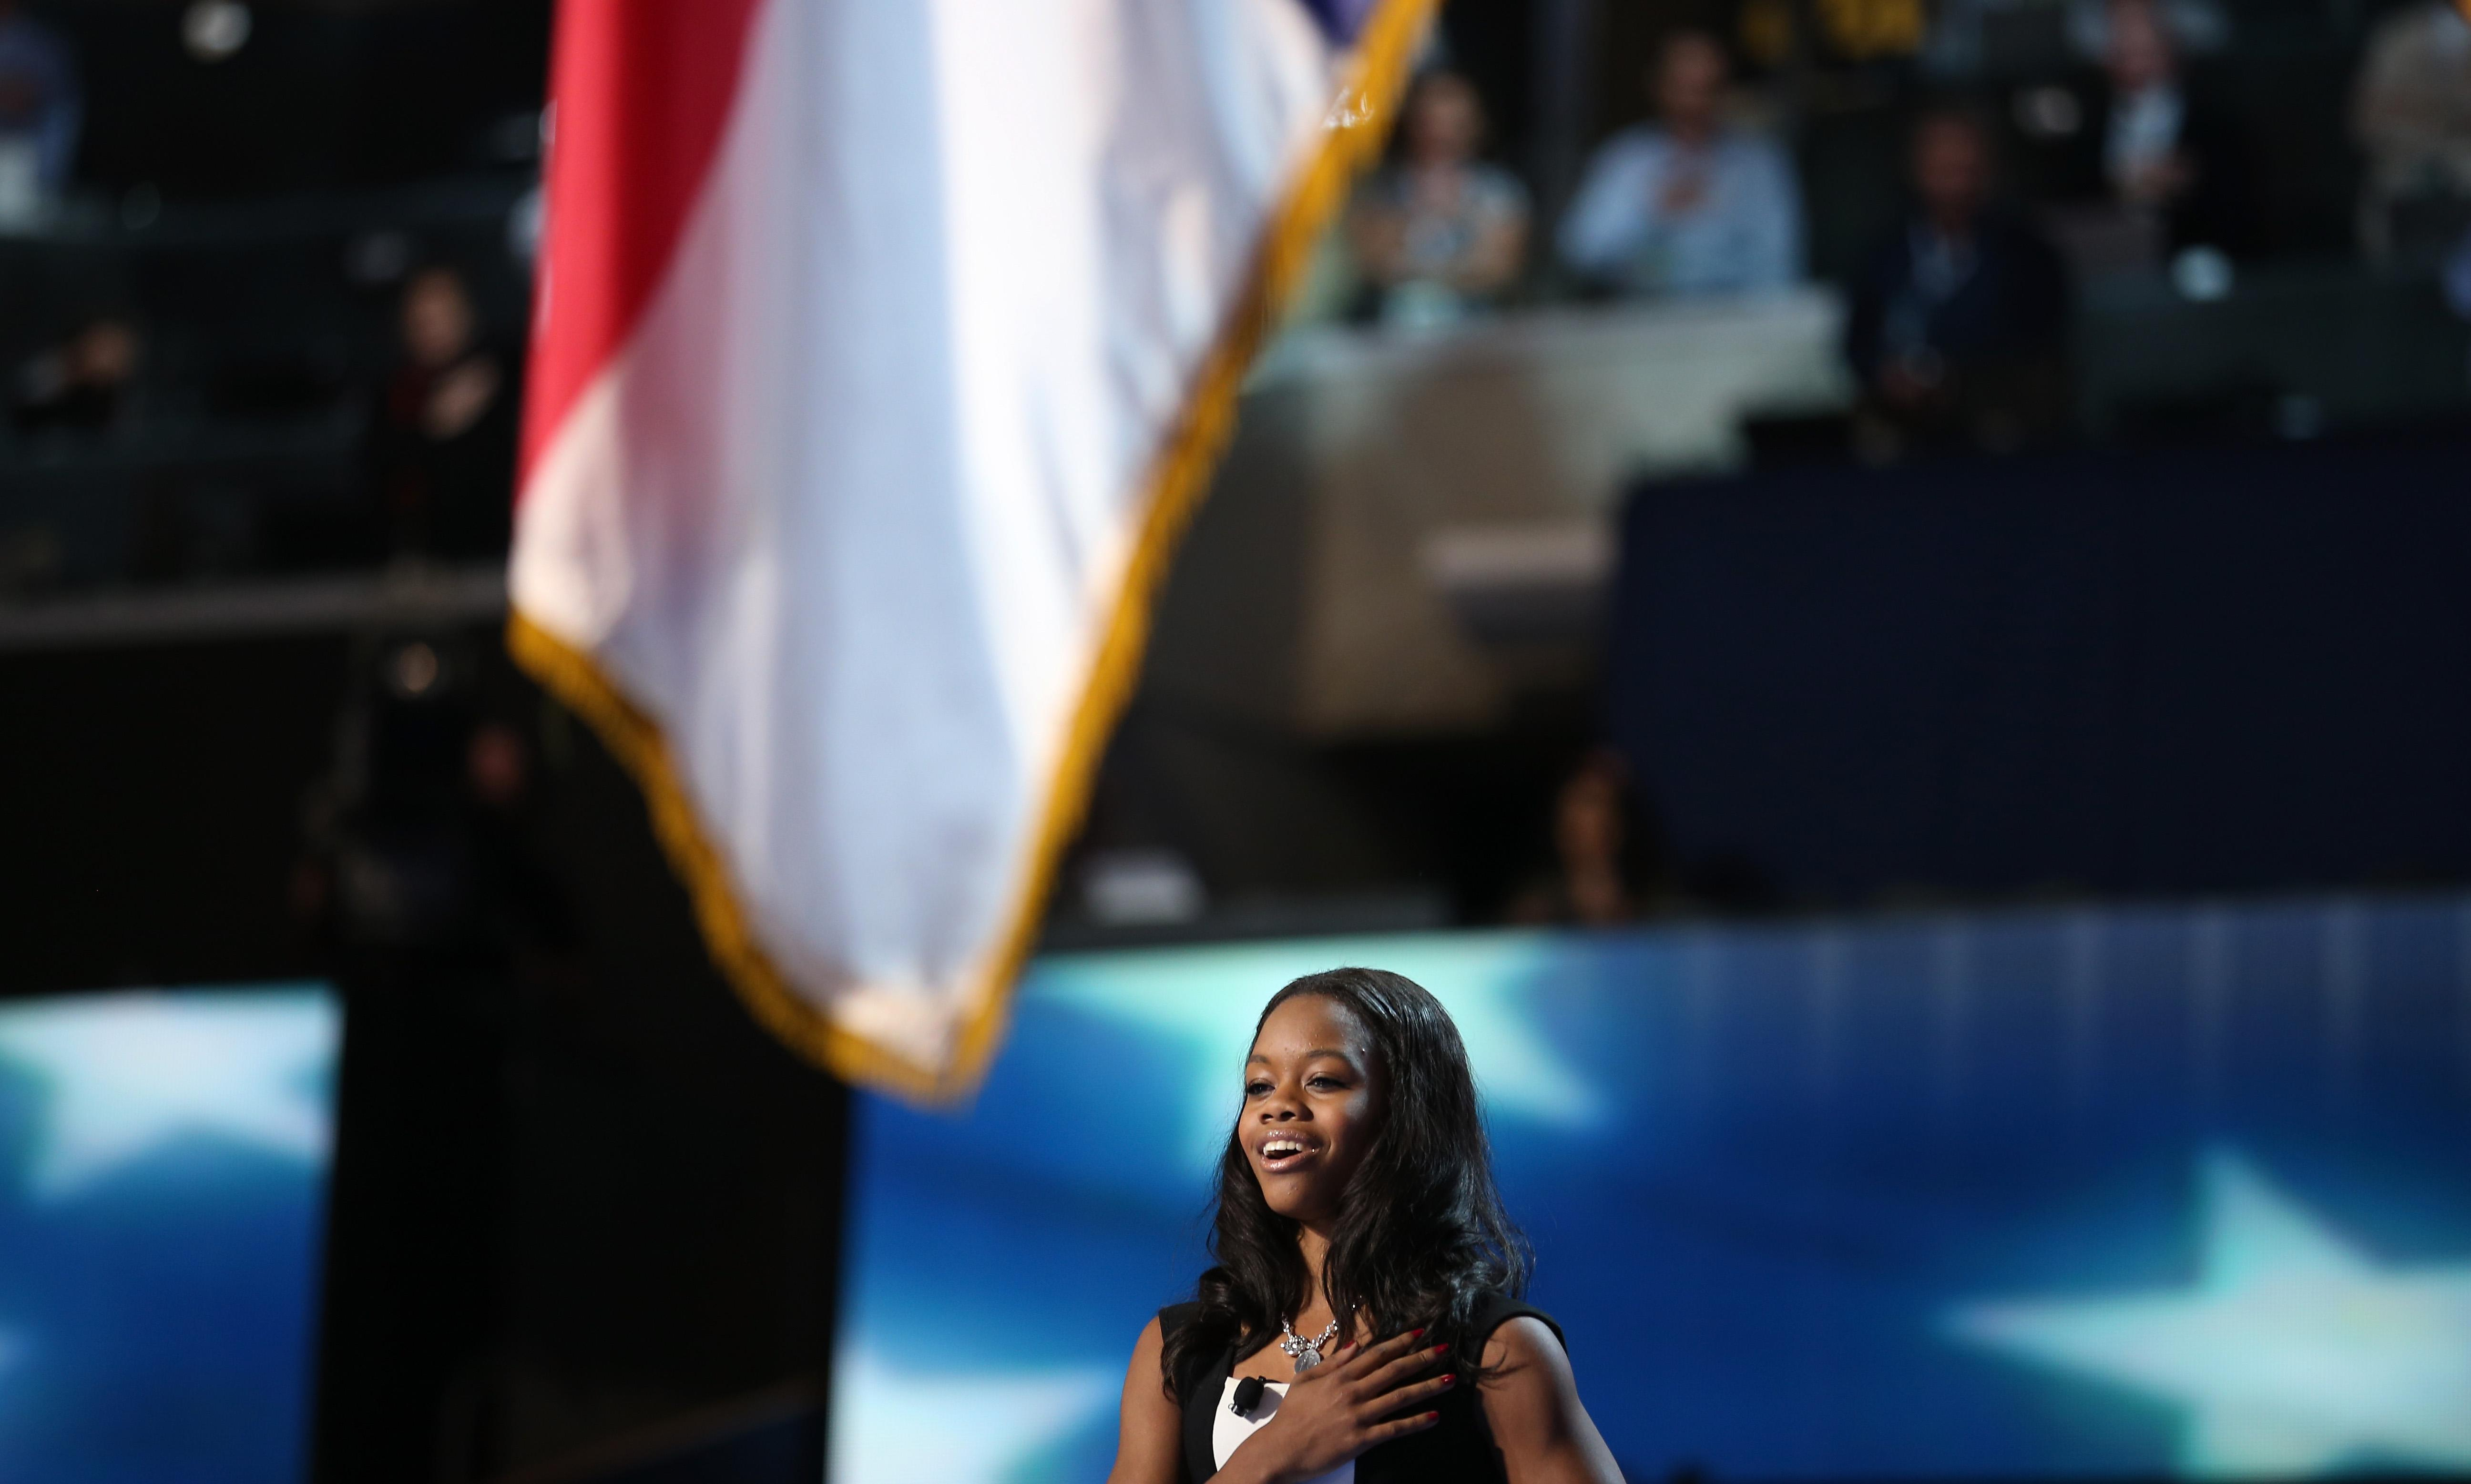 CHARLOTTE, NC - SEPTEMBER 05: Olympic gymnast Gabby Douglas leads the Pledge of Allegiance during day two of the Democratic National Convention at Time Warner Cable Arena on September 5, 2012 in Charlotte, North Carolina. The DNC that will run through September 7, will nominate U.S. President Barack Obama as the Democratic presidential candidate. (Photo by Chip Somodevilla/Getty Images)